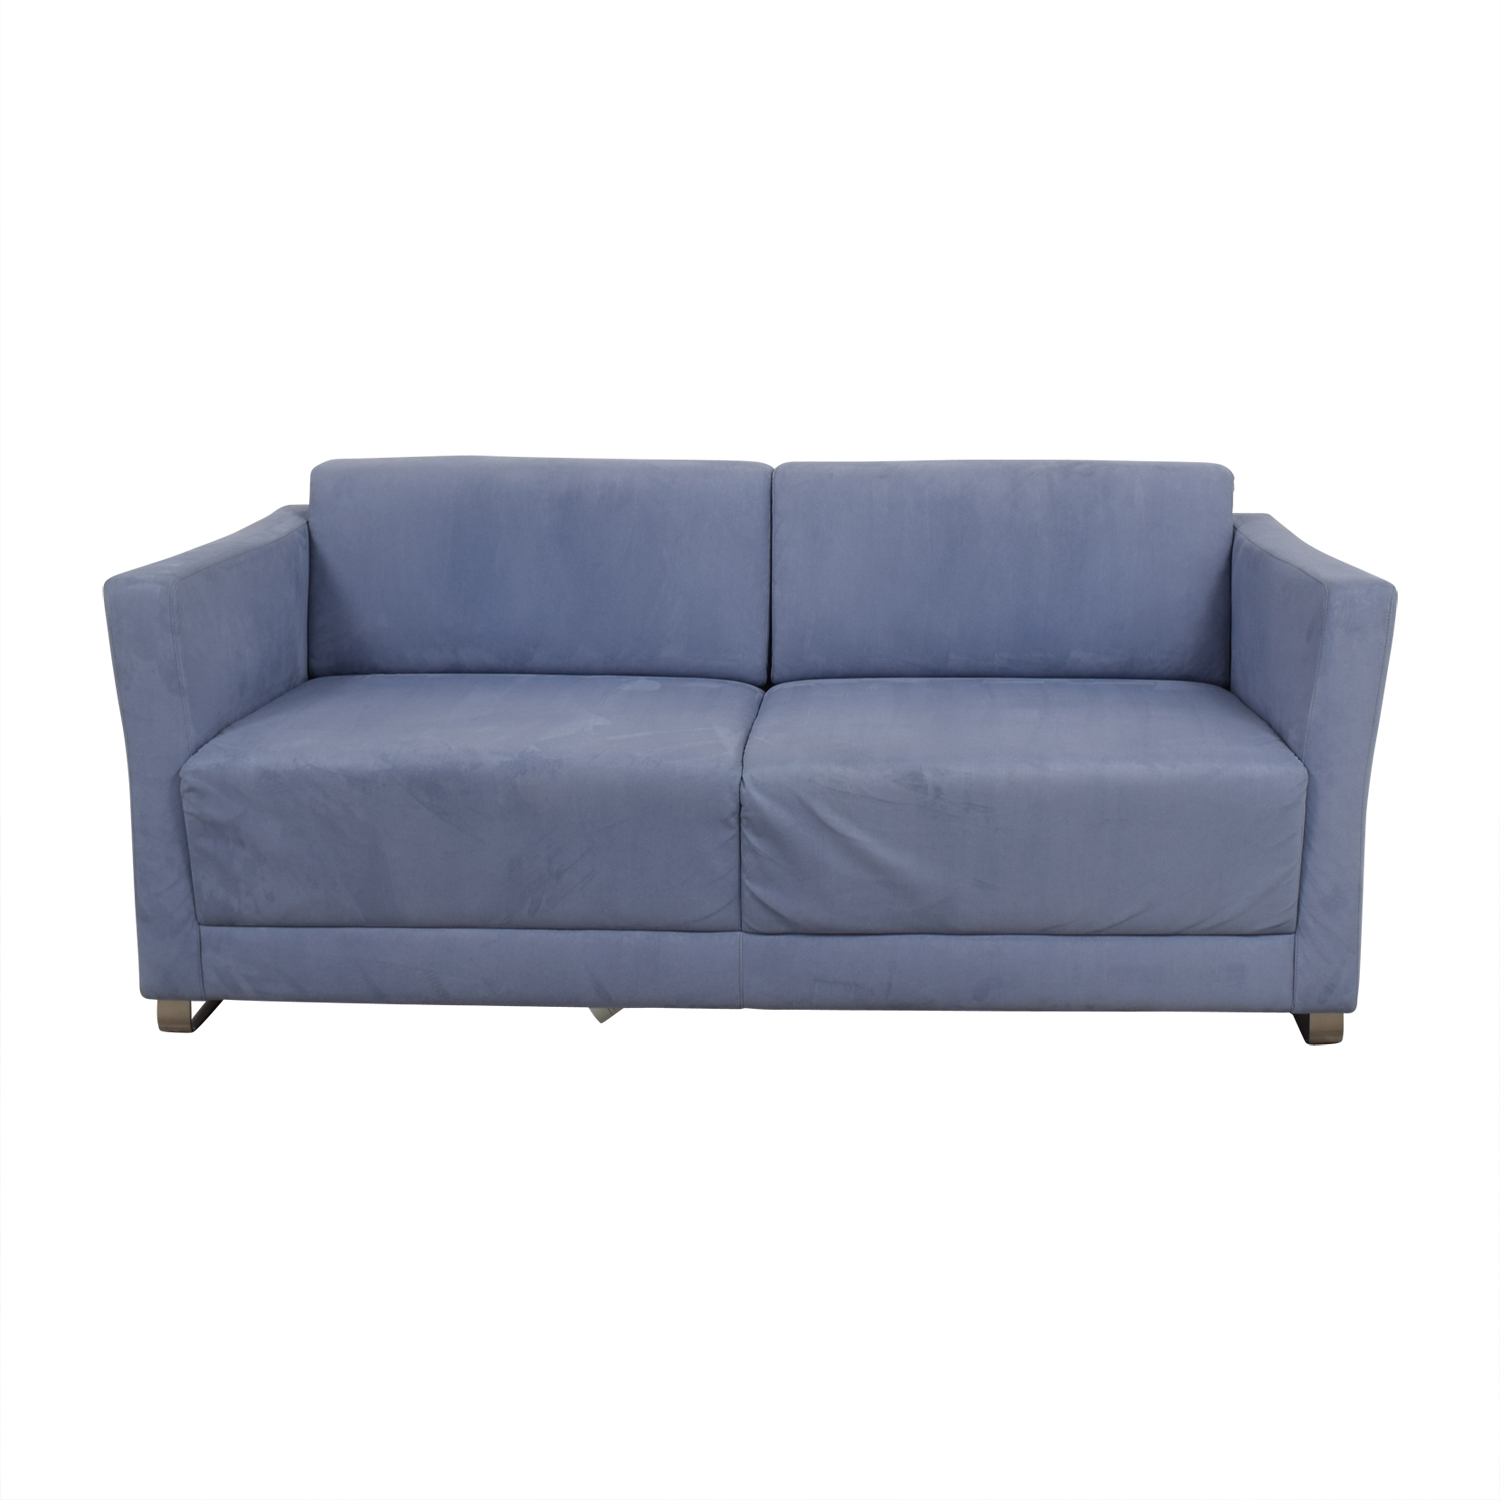 Bernhardtt Bernhardt Milix Light Blue Sofa nj